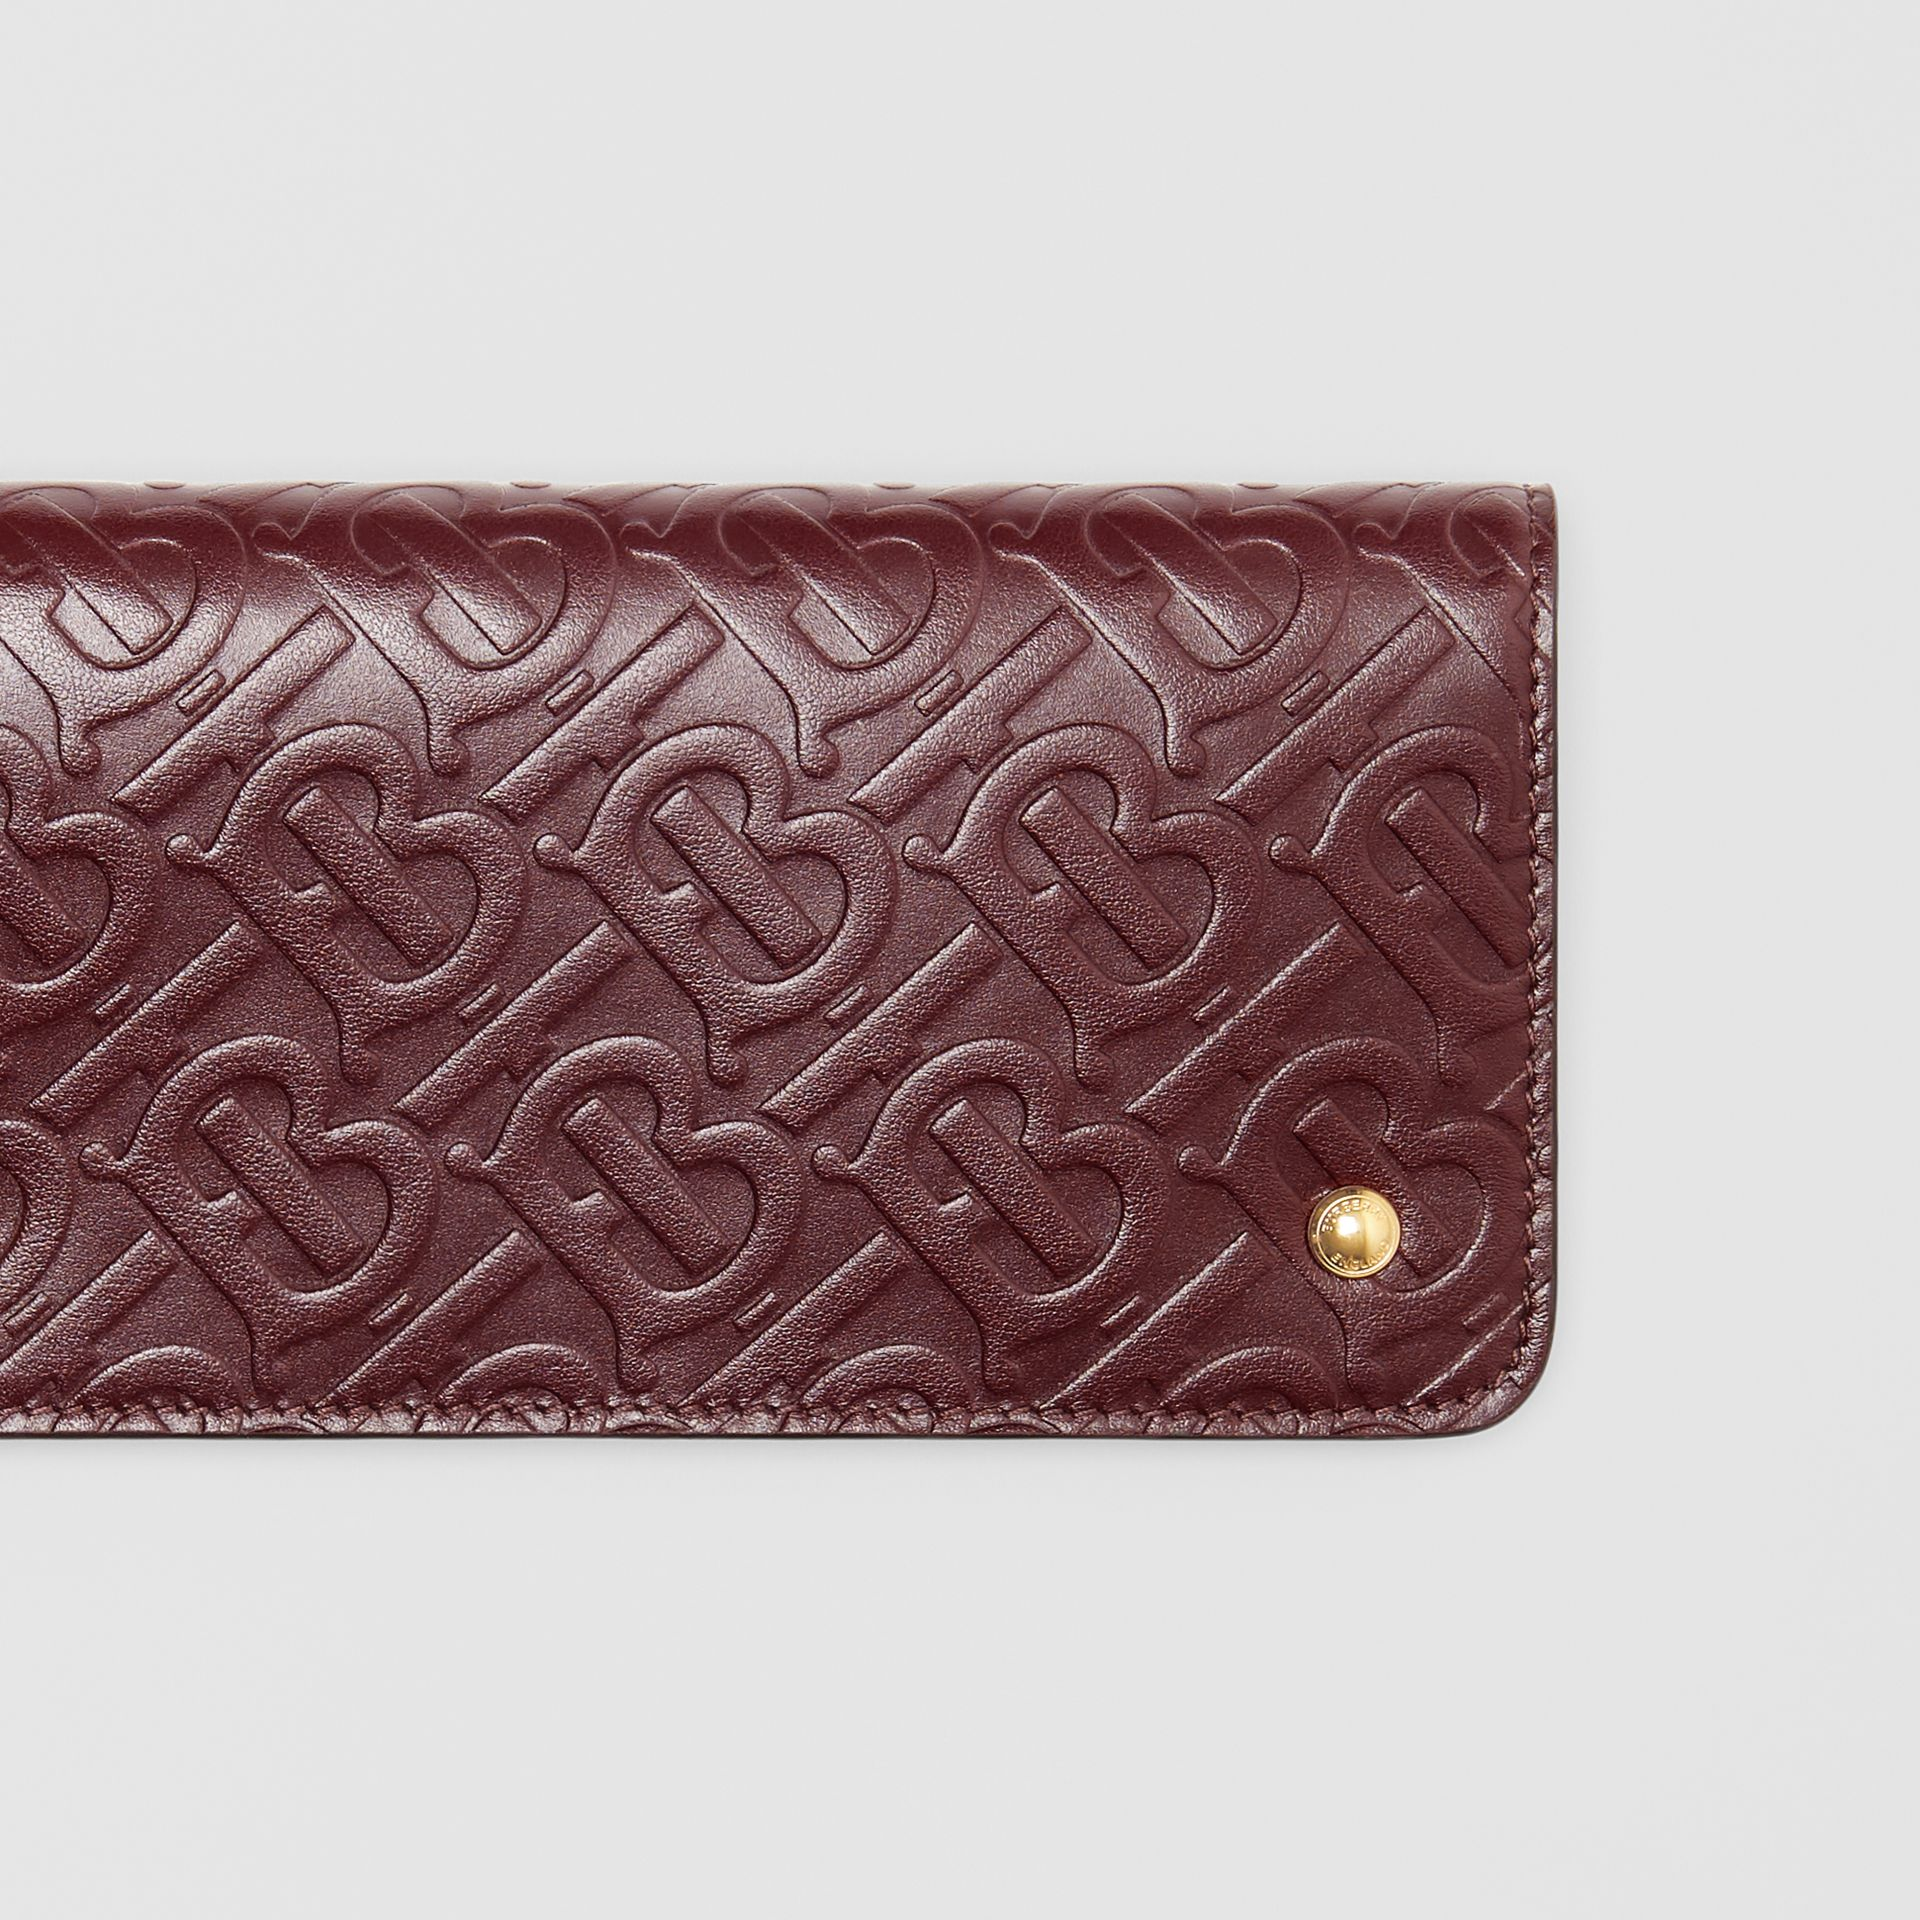 Monogram Leather Phone Wallet in Oxblood - Women | Burberry - gallery image 1